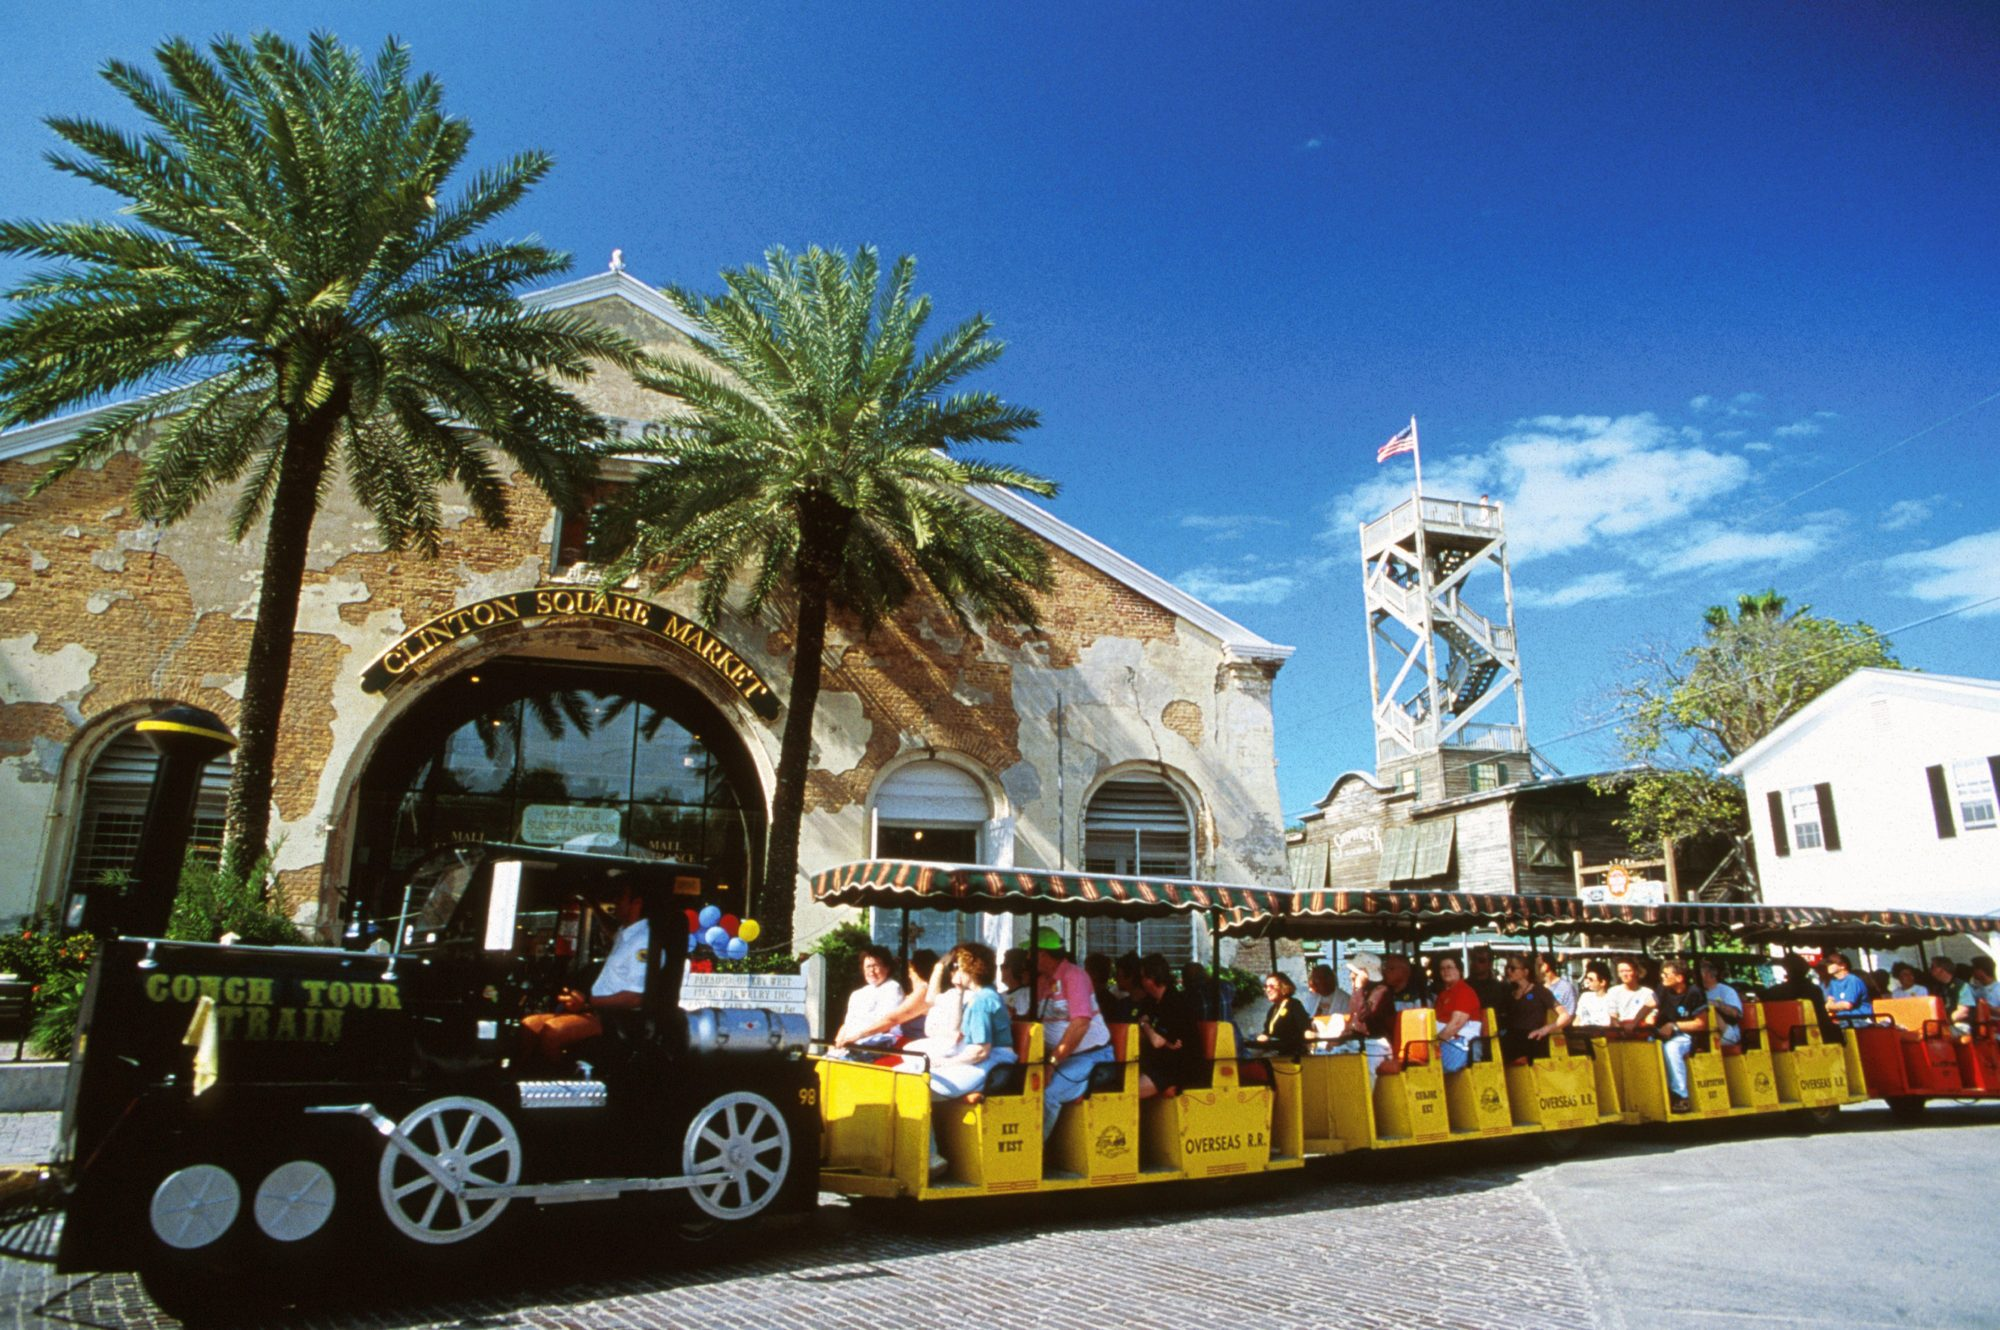 Perfect for families (kids 12 and under ride free!), the 90-minute Conch Train Tour has been introducing visitors to the unique aspects of Key West since the 1950s. The tour departs from the Front Street Depot, makes a loop through Old Town Key West, and